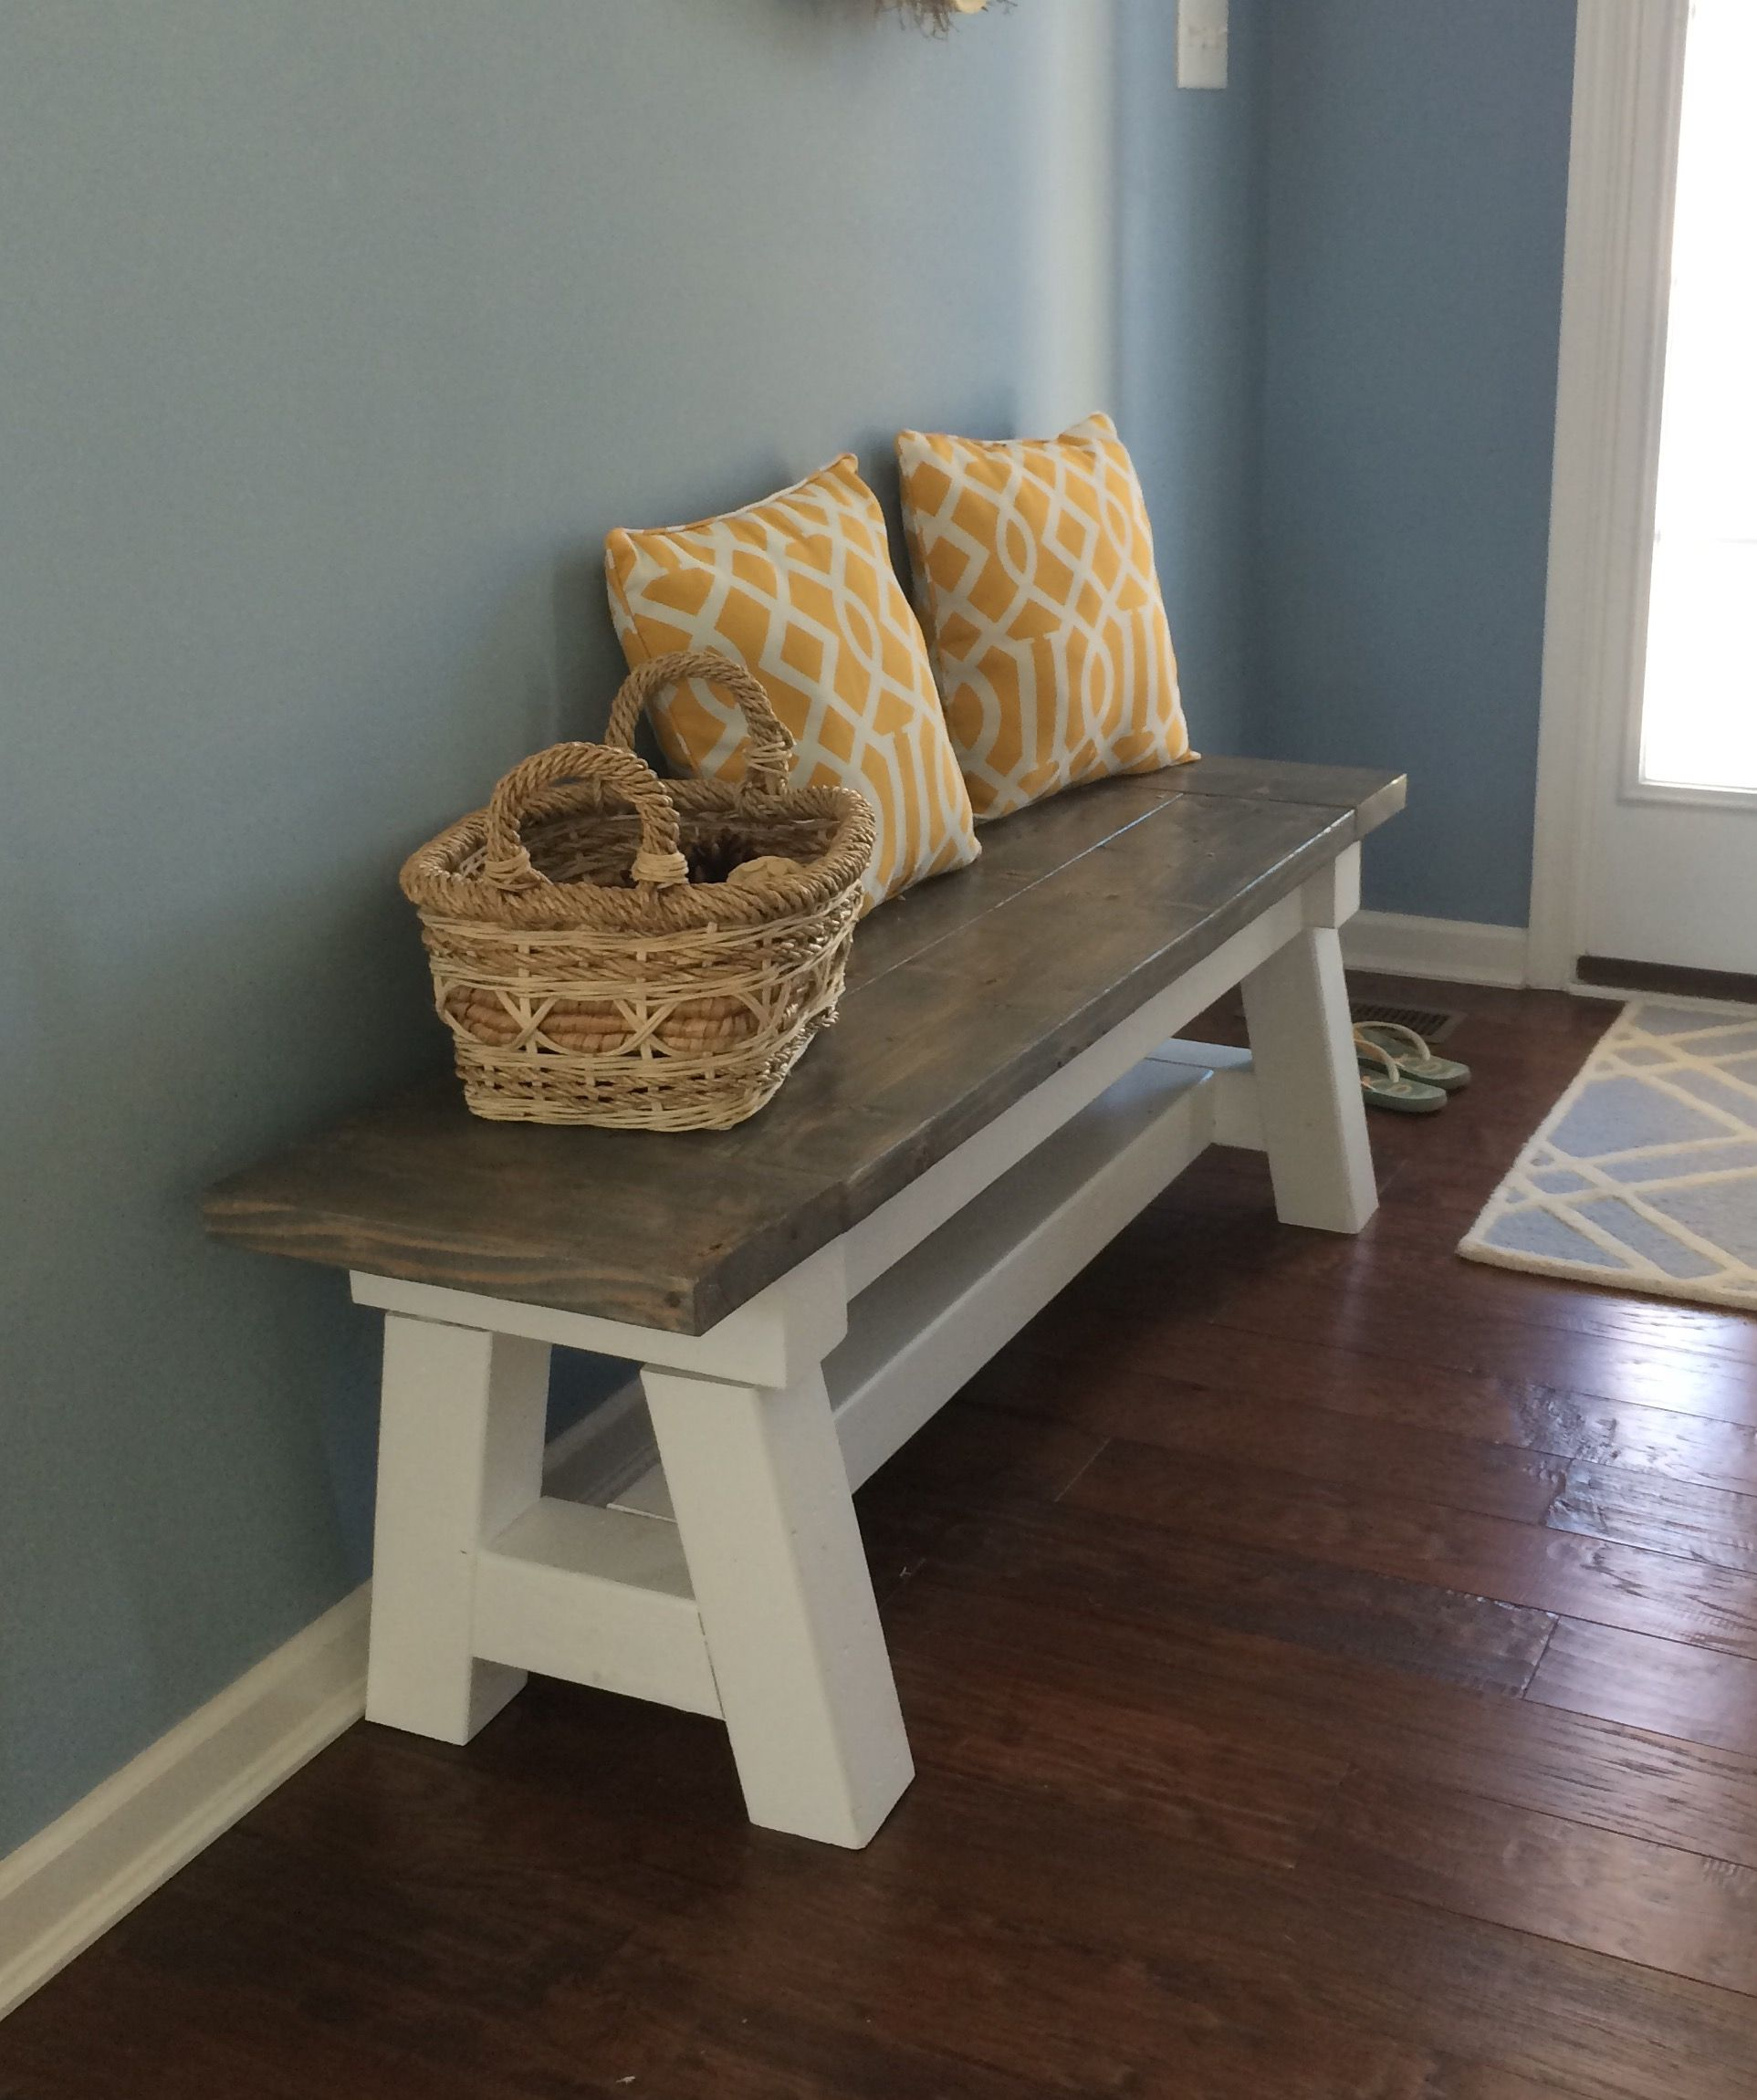 Farmhouse bench woodworking plans woodshop plans - Beach Bench Do It Yourself Home Projects From Ana White Farmhouse Benchfarmhouse Furniturewhite